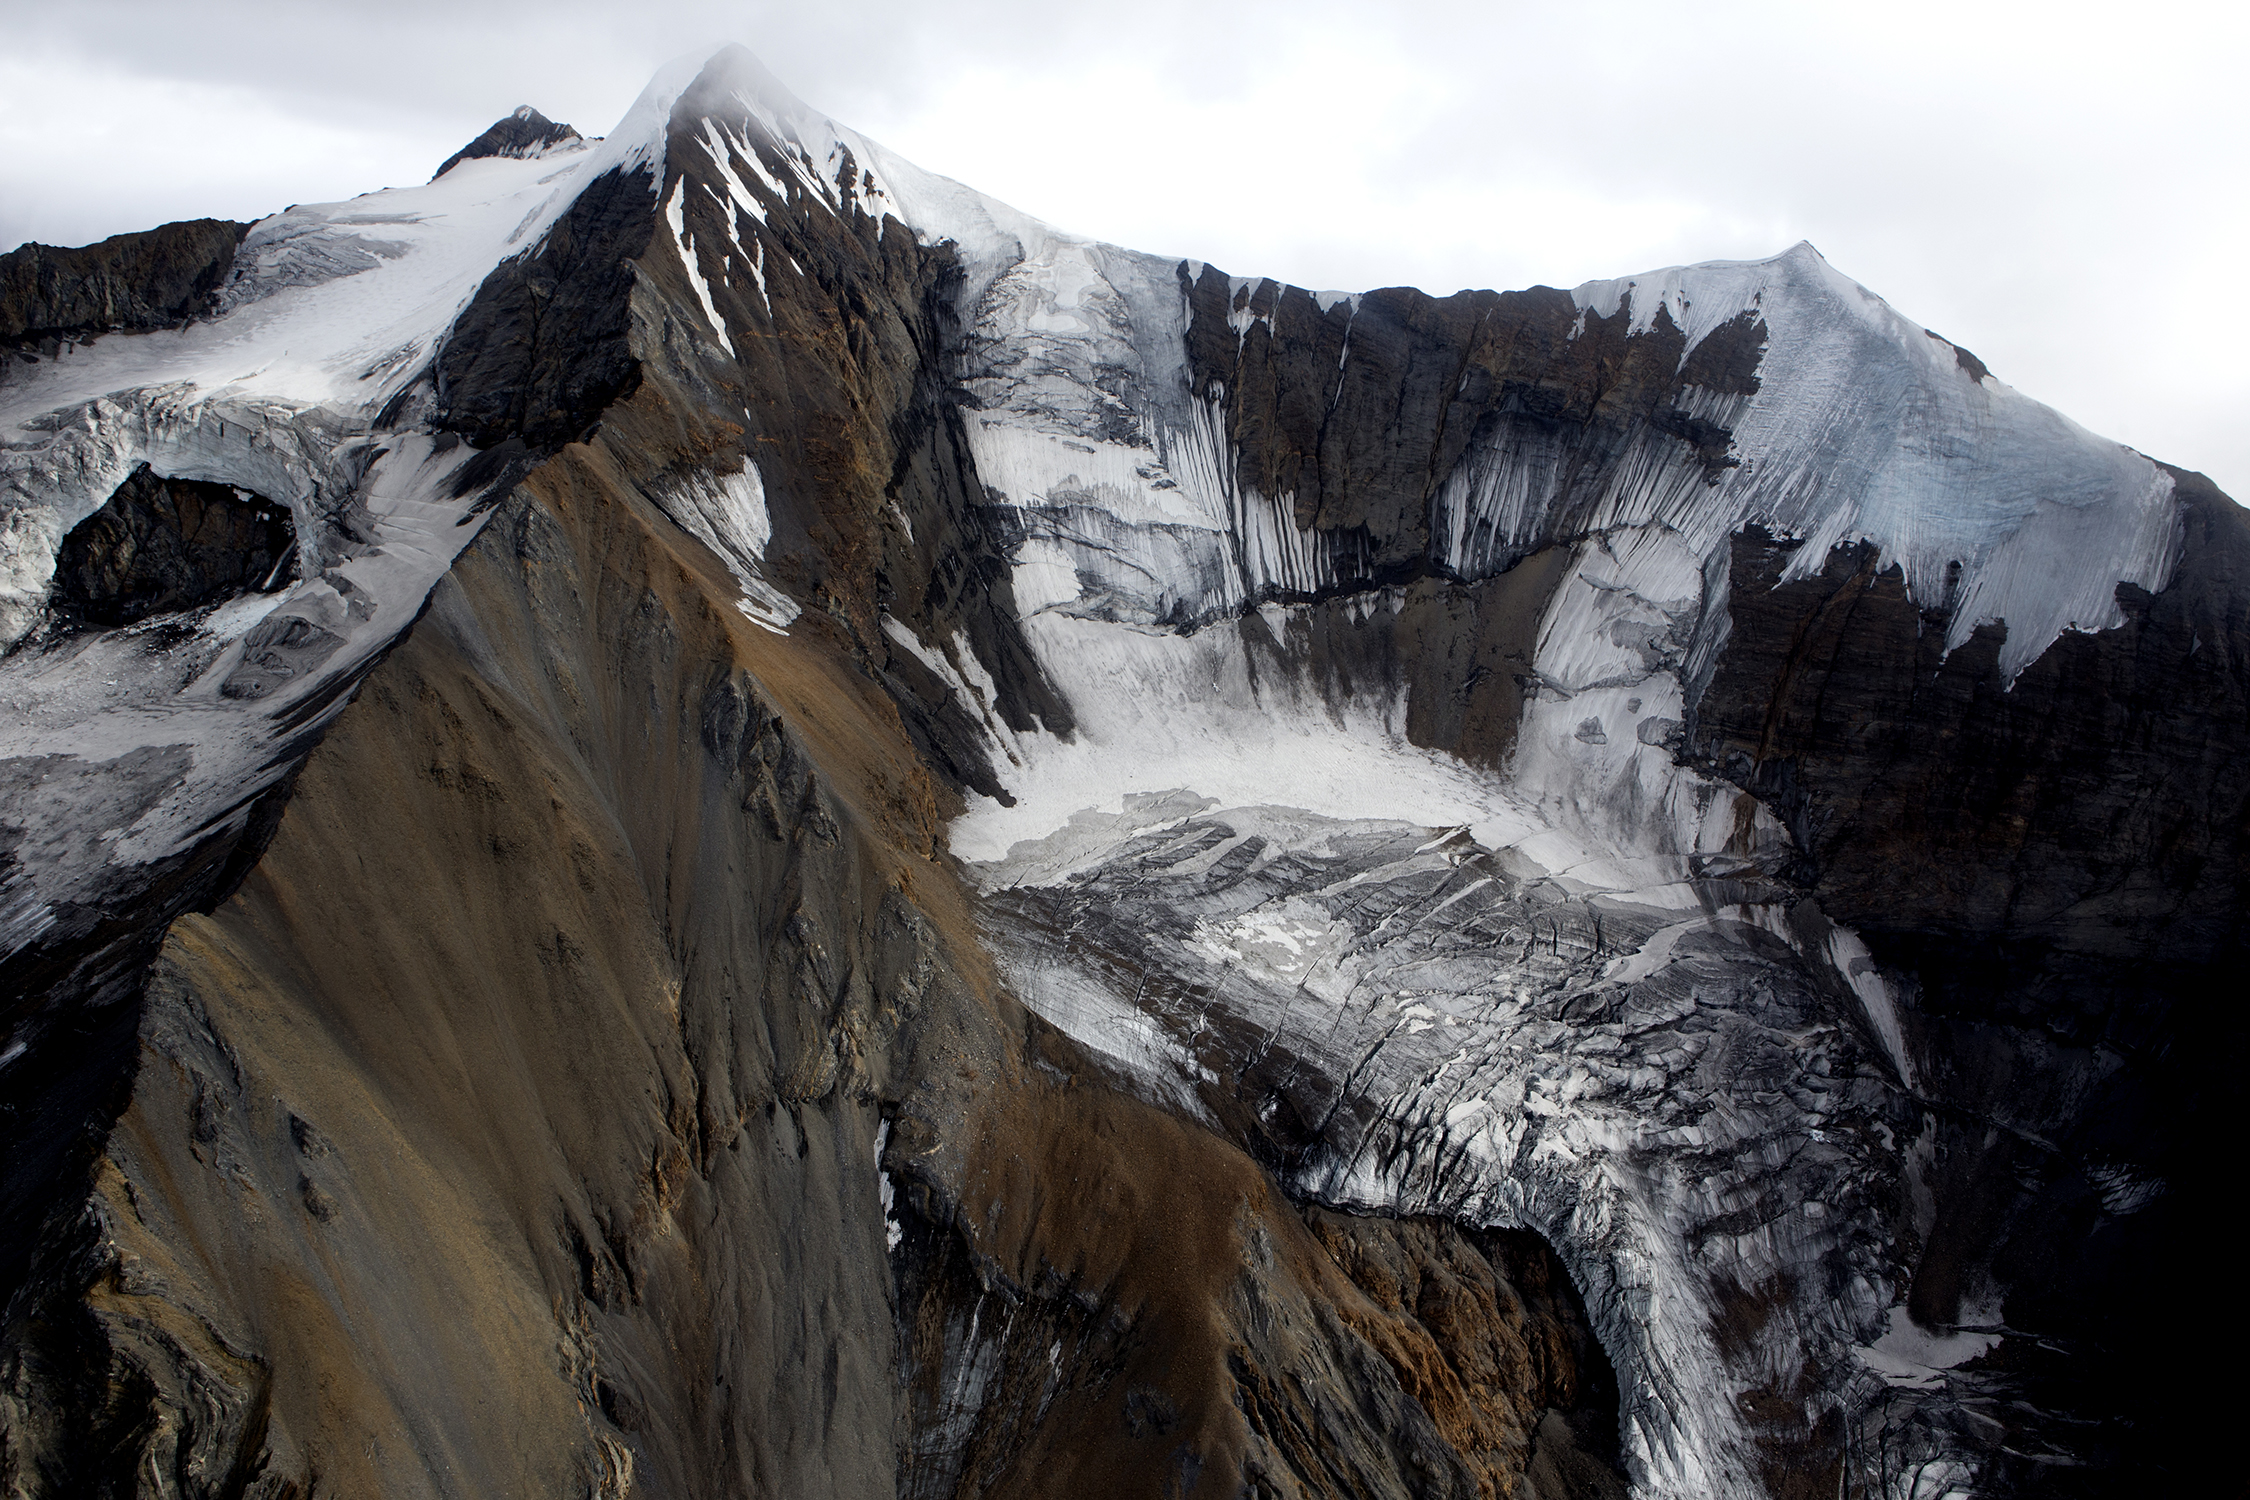 Large amounts of rock debris are carried on, in, and beneath the ice as the glaciers move downslope in the Alaska Range. © Photo by Gail Fisher